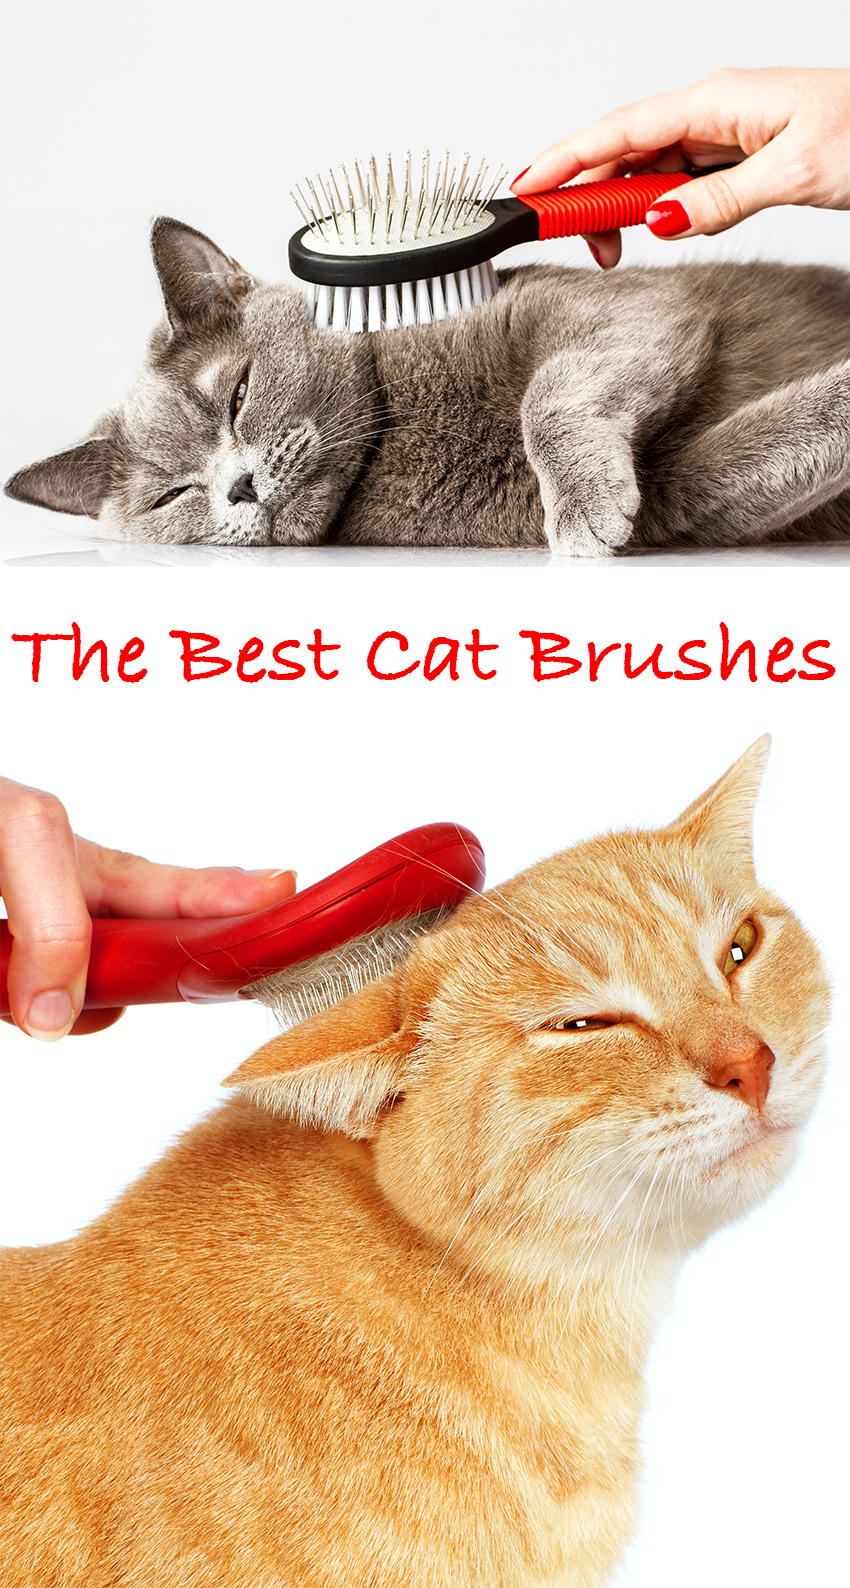 The Best Cat Brush. Choosing the right cat comb and cat grooming toola